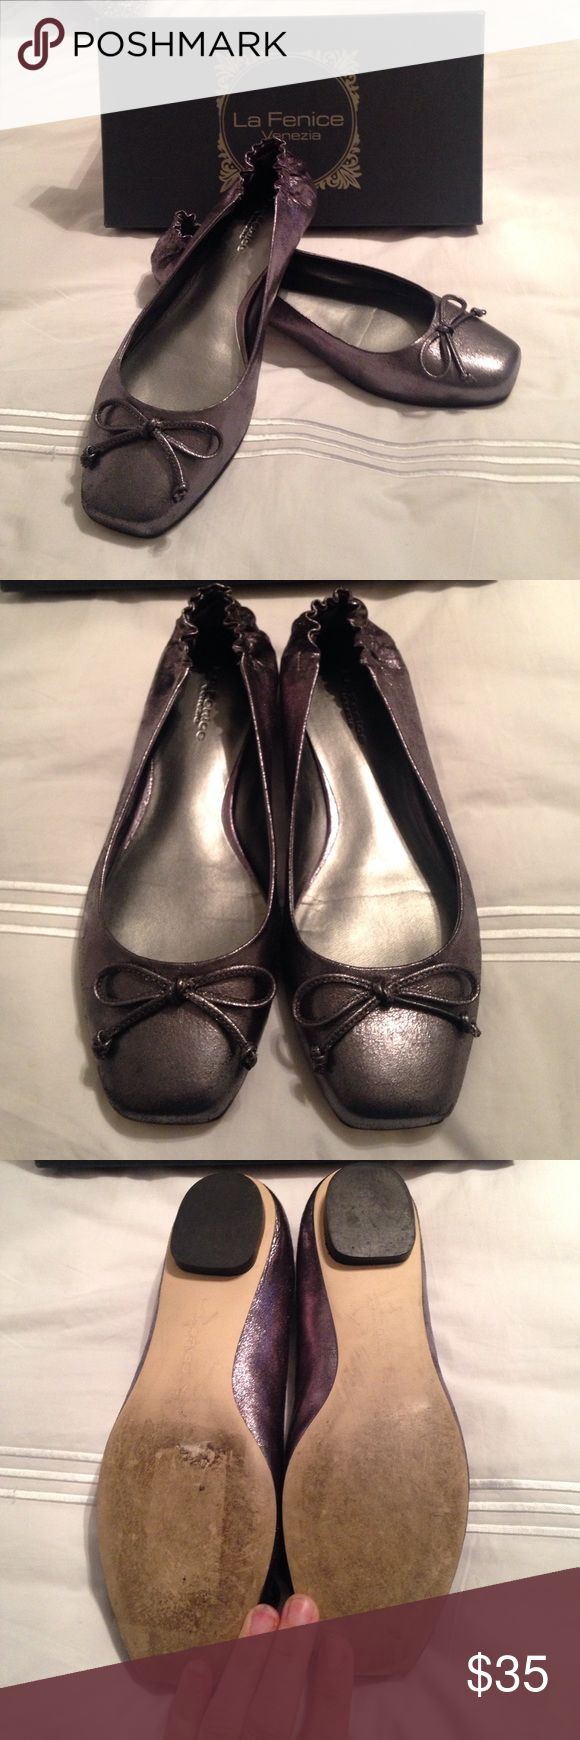 Silver ballet flats -7.5 Gently worn silver ballet flats. Purchased from Neiman Marcus Last Call. Has elastic back.  Bundle and save! Shoes Flats & Loafers